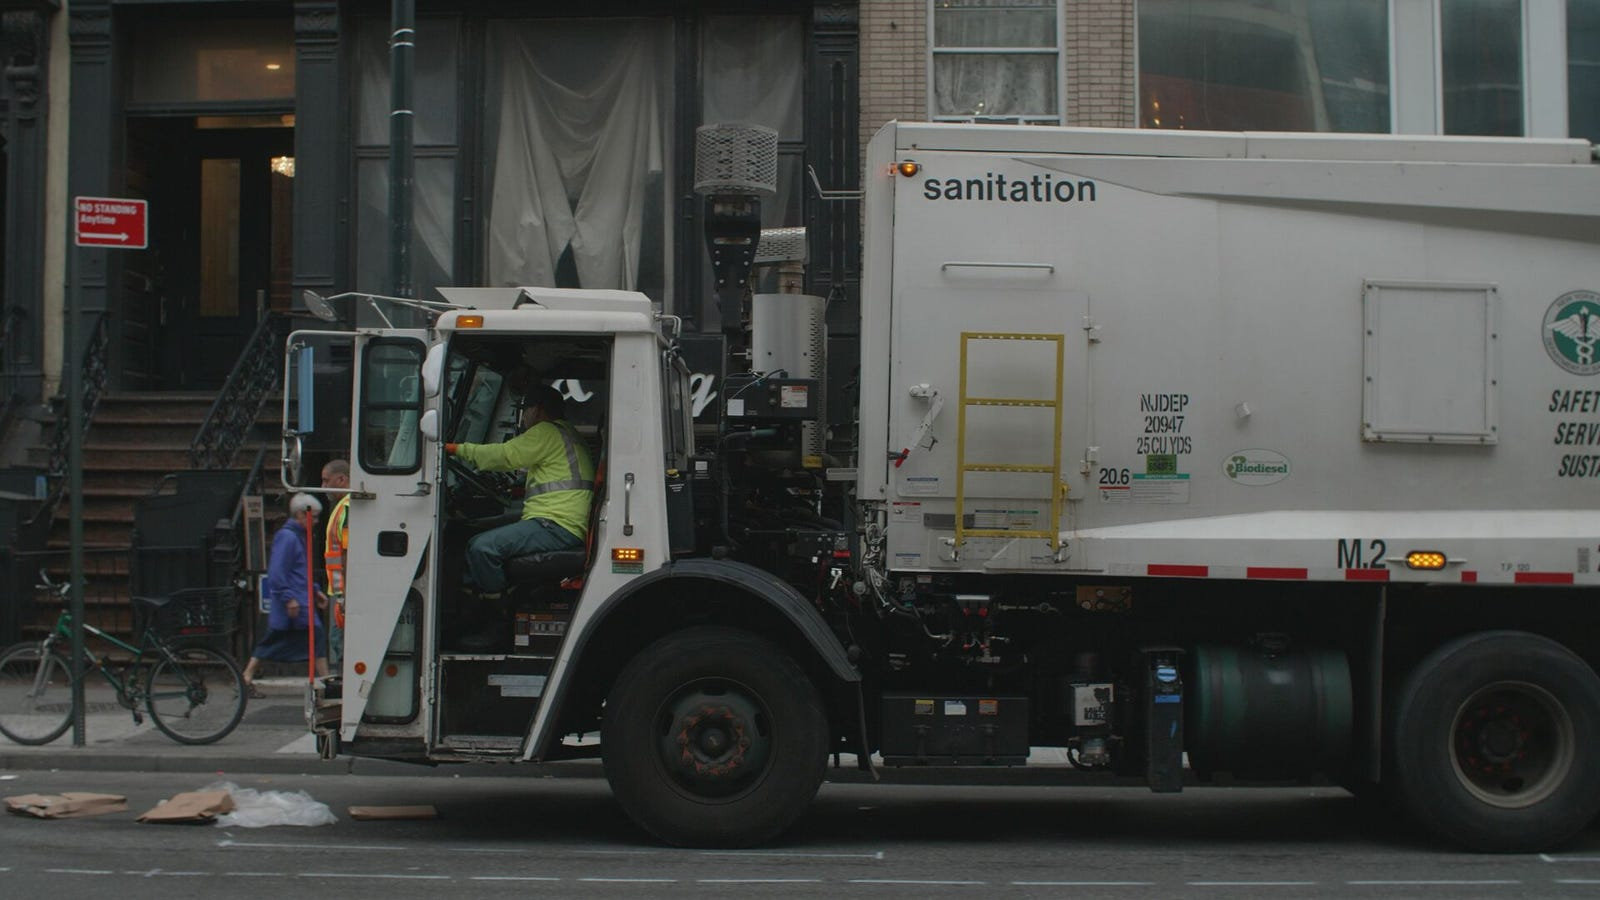 Go Inside New York's Trash Operation With /DRIVE On NBC Sports